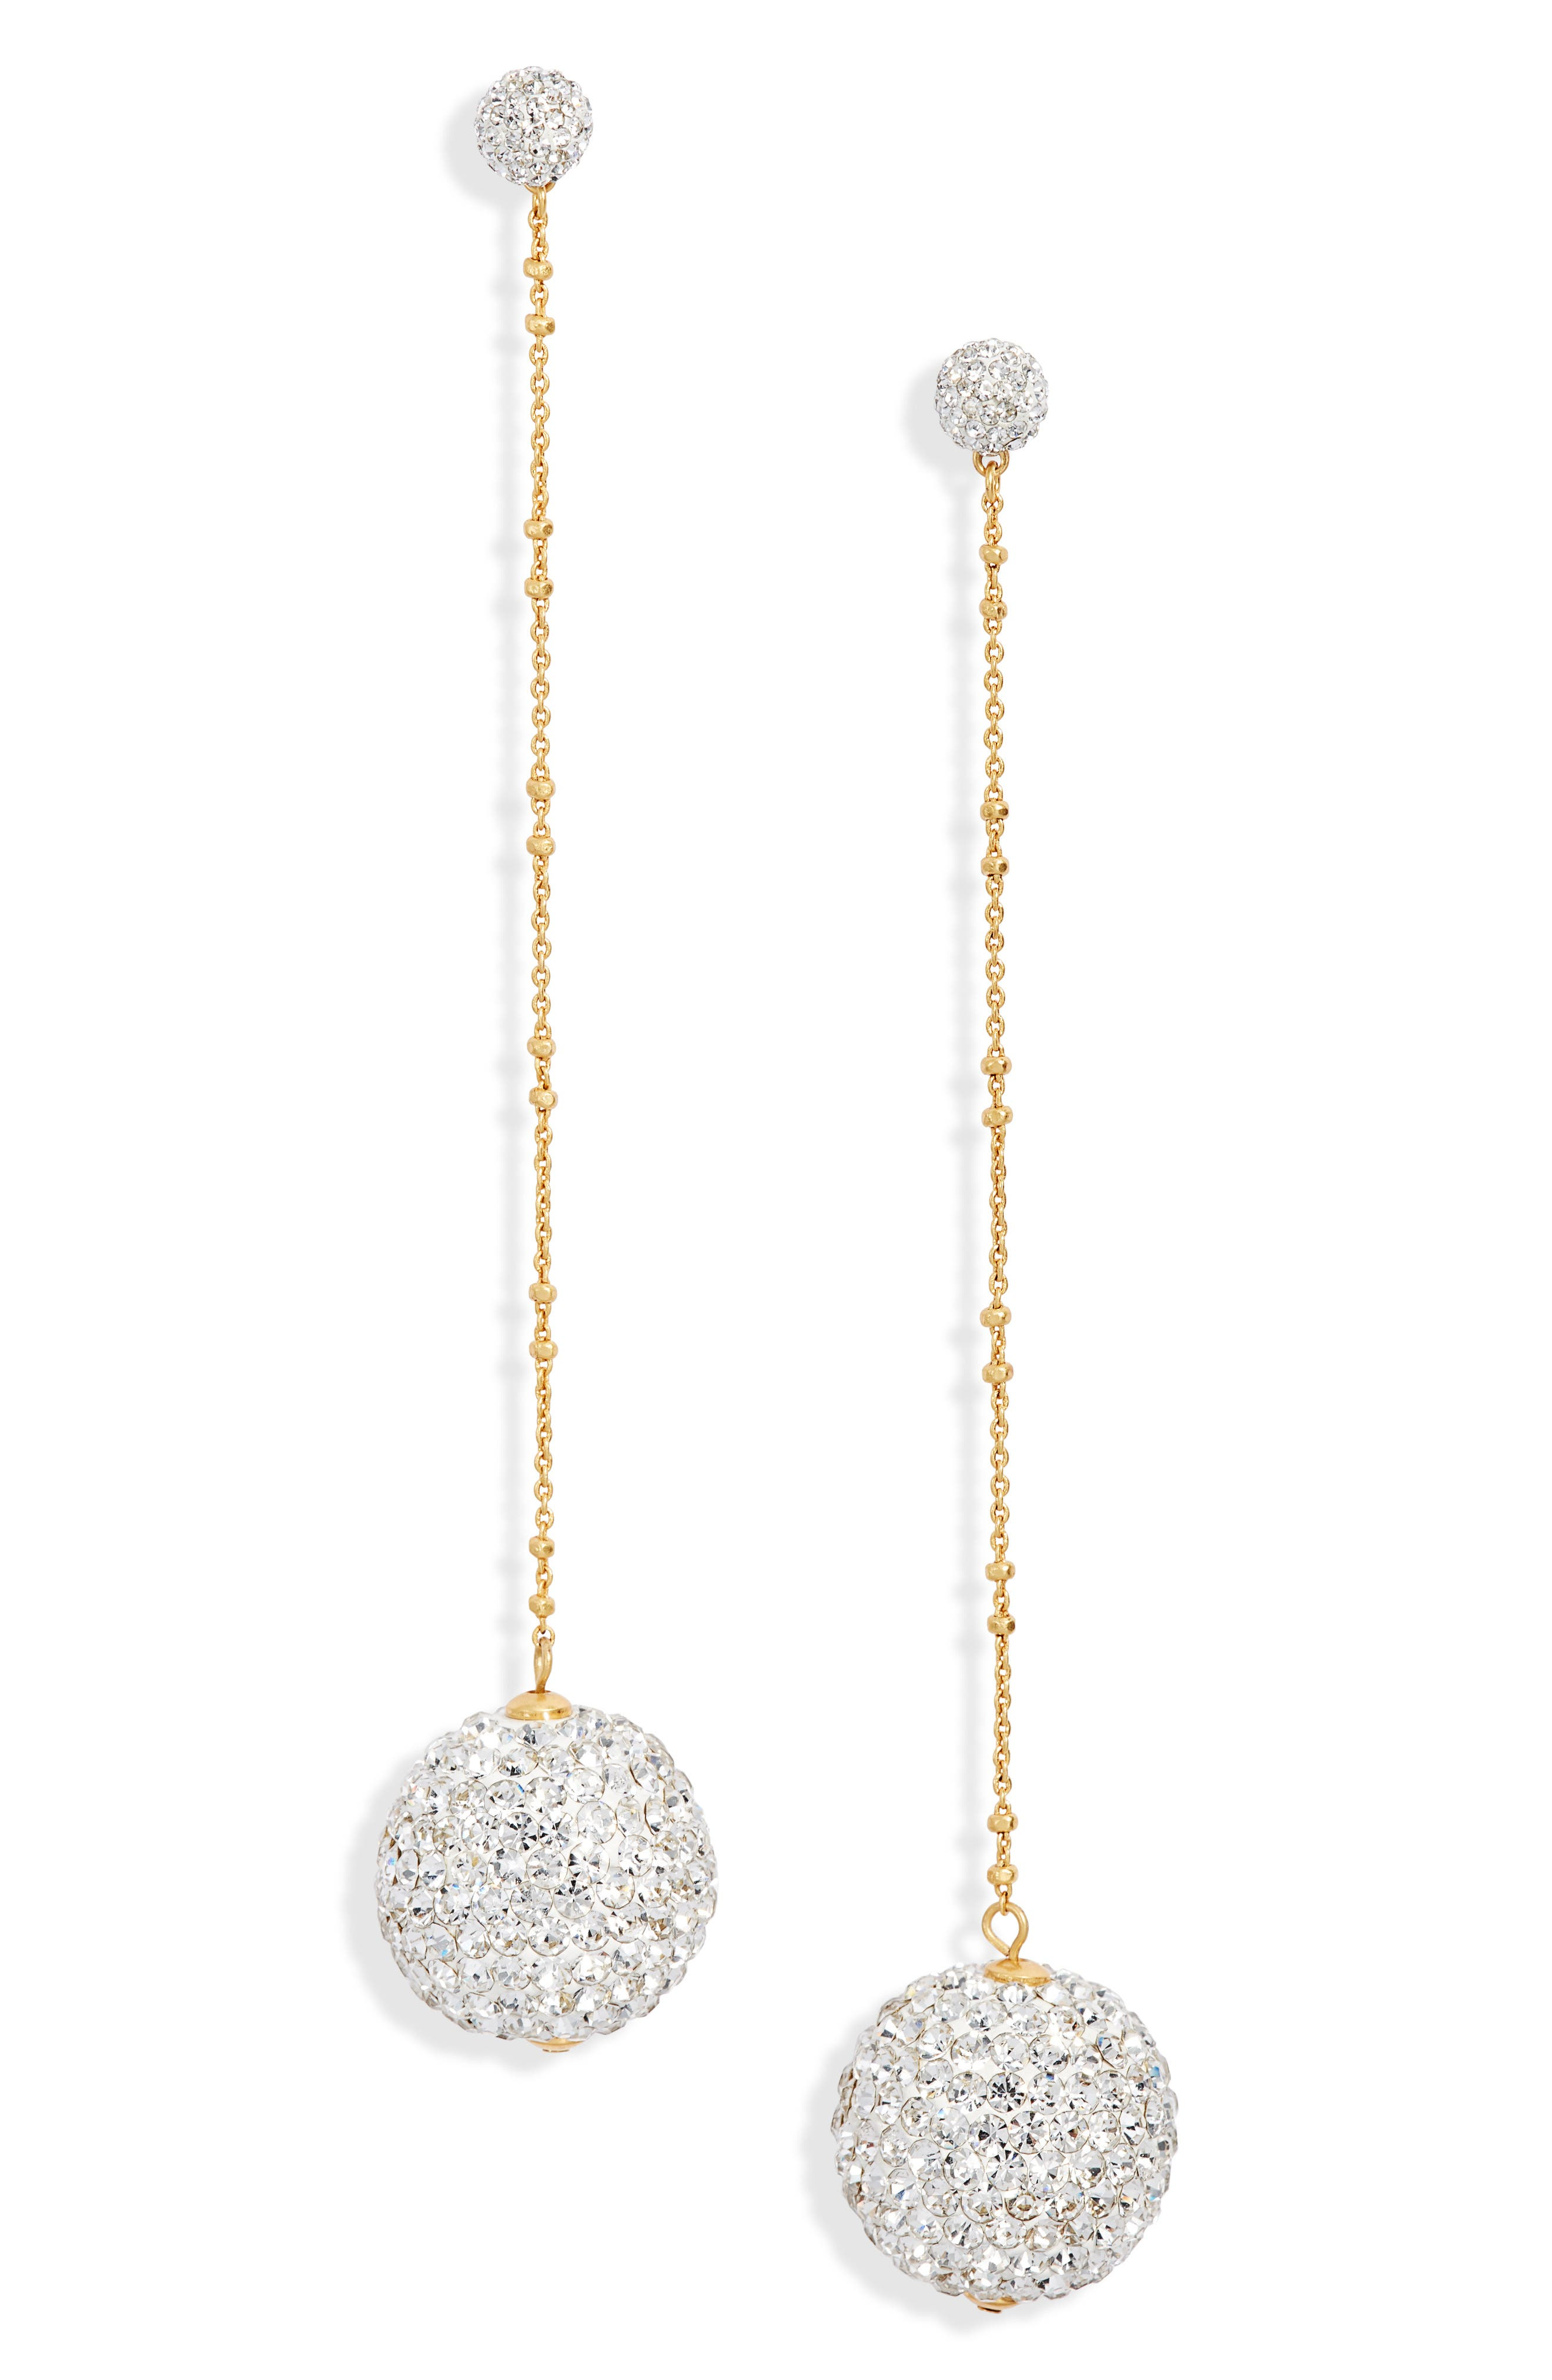 KATE SPADE NEW YORK,                             razzle dazzle linear statement earrings,                             Main thumbnail 1, color,                             714